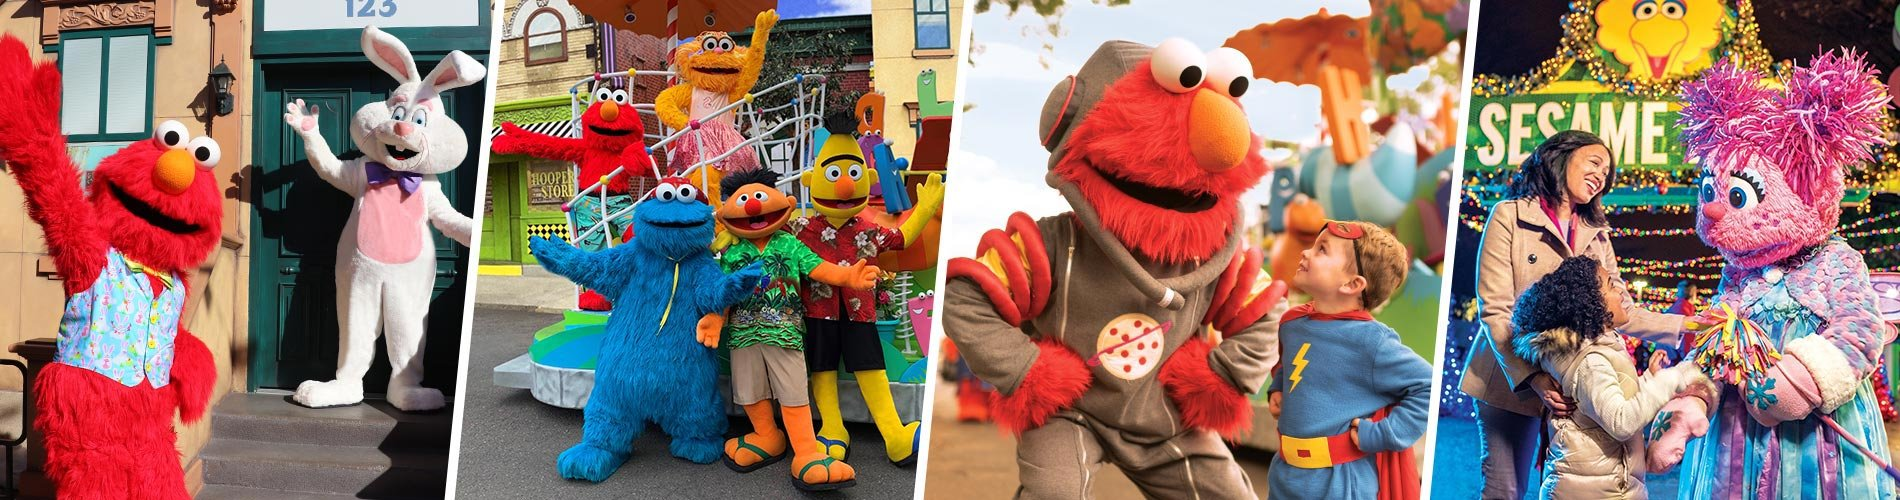 Seasonal Events at Sesame Place San Diego